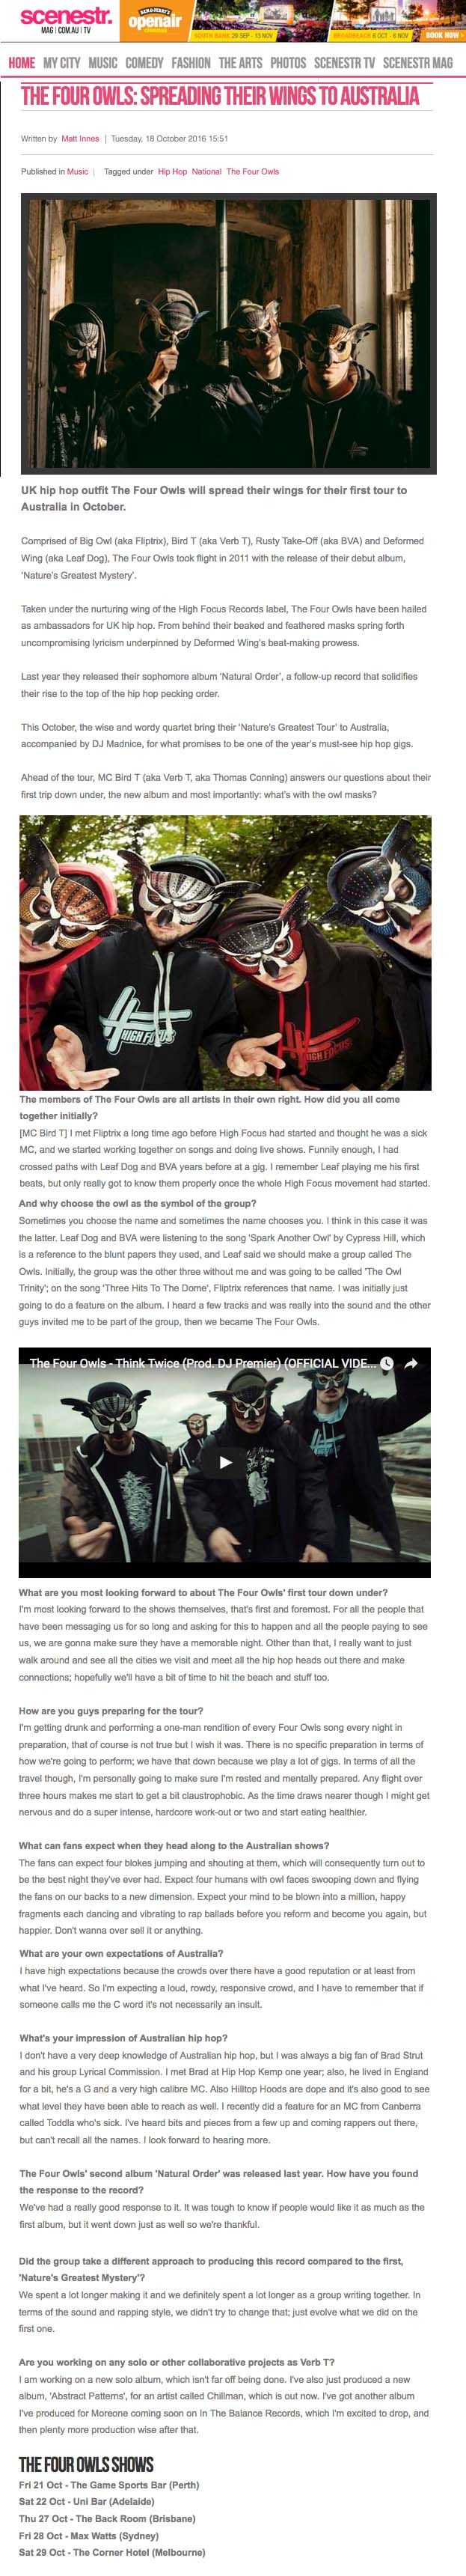 official website of high focus records the four owls the four owls spreading their wings to tour 2016 interview scenestr